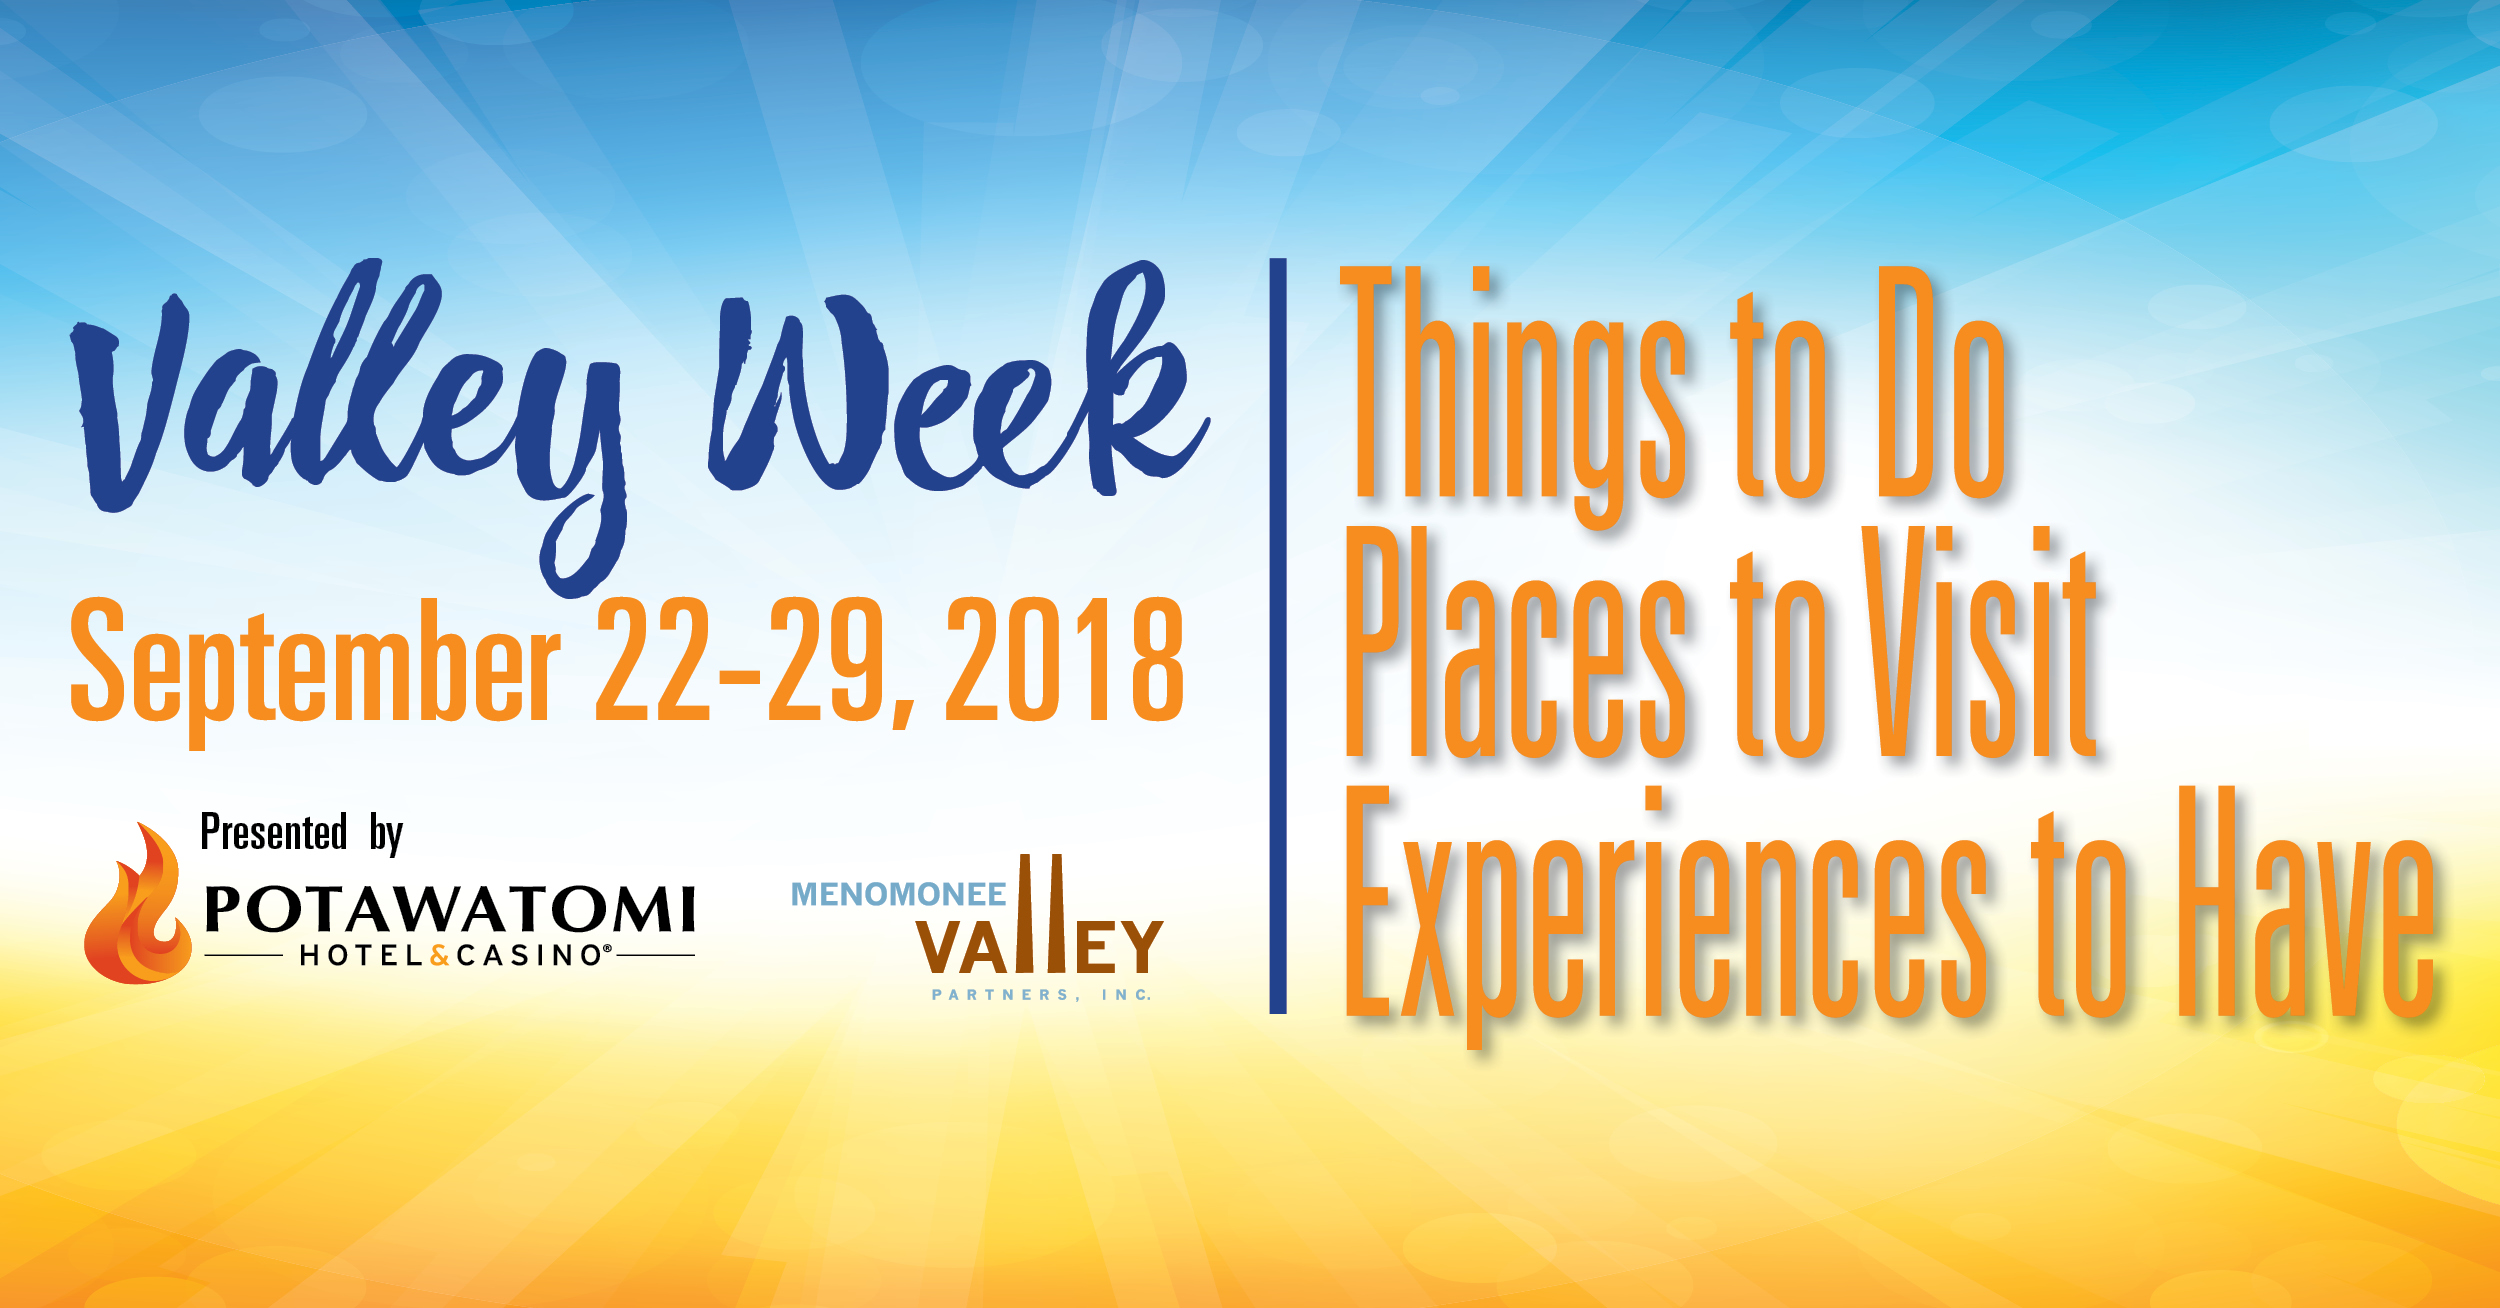 Valley Week runs September 22-29